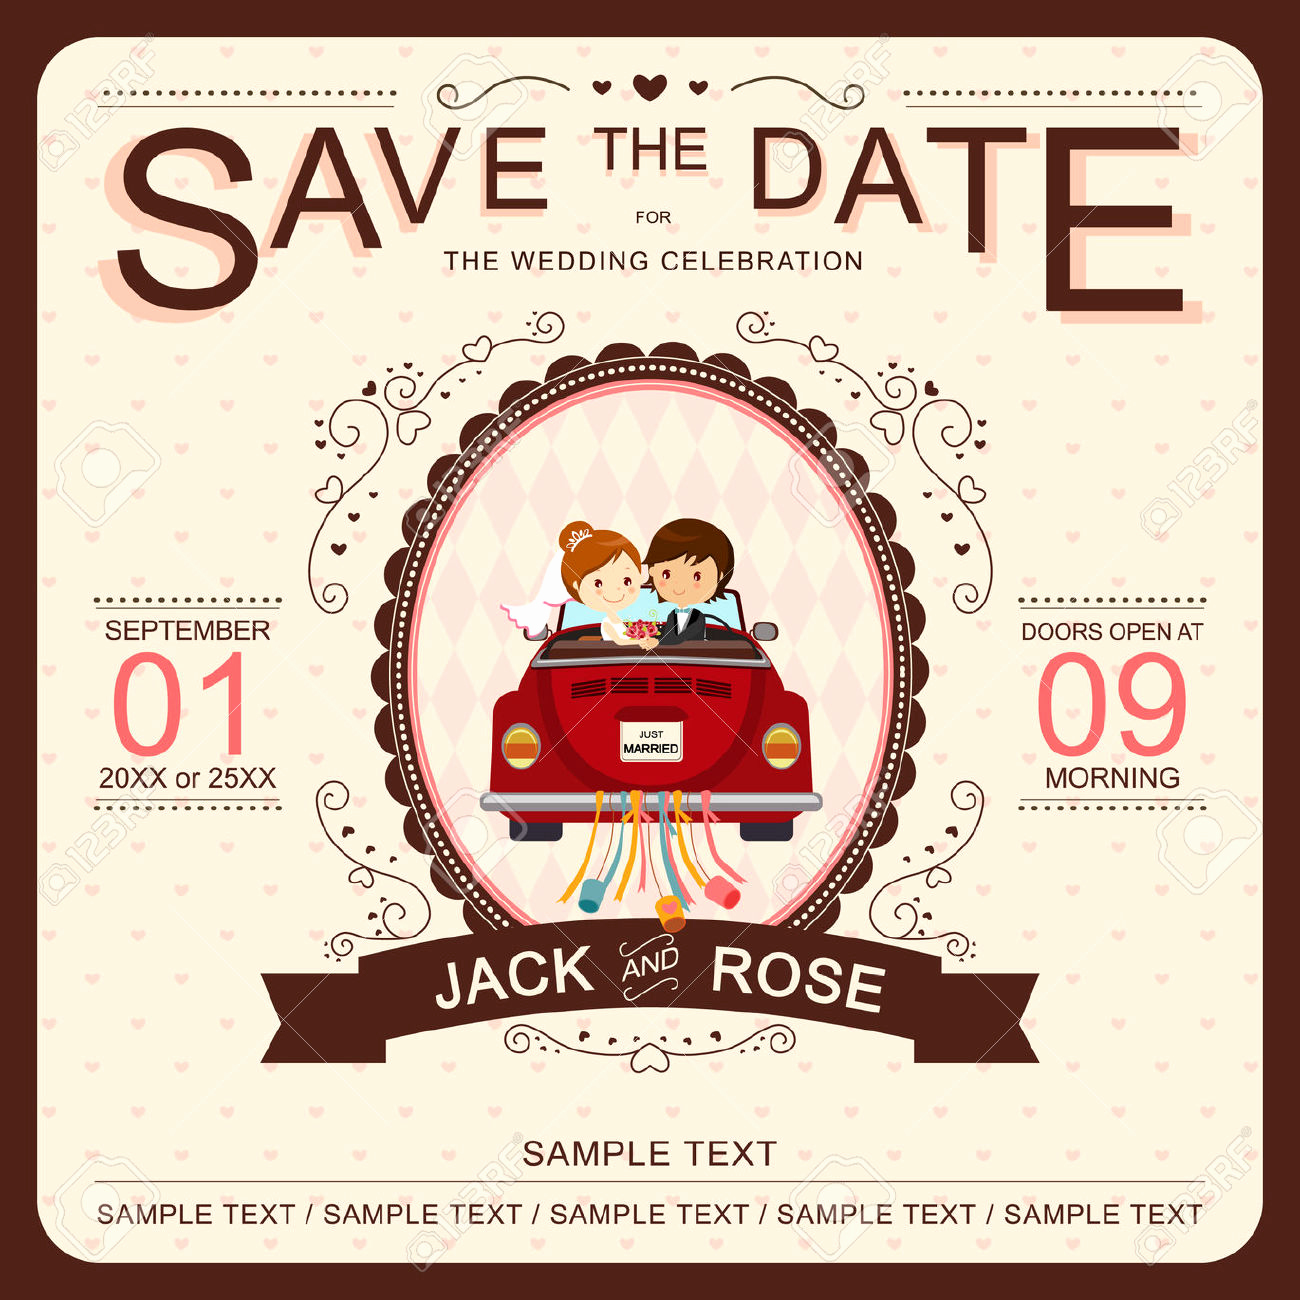 Cute Wedding Invitation Ideas Inspirational Cute Wedding Invitation Templates